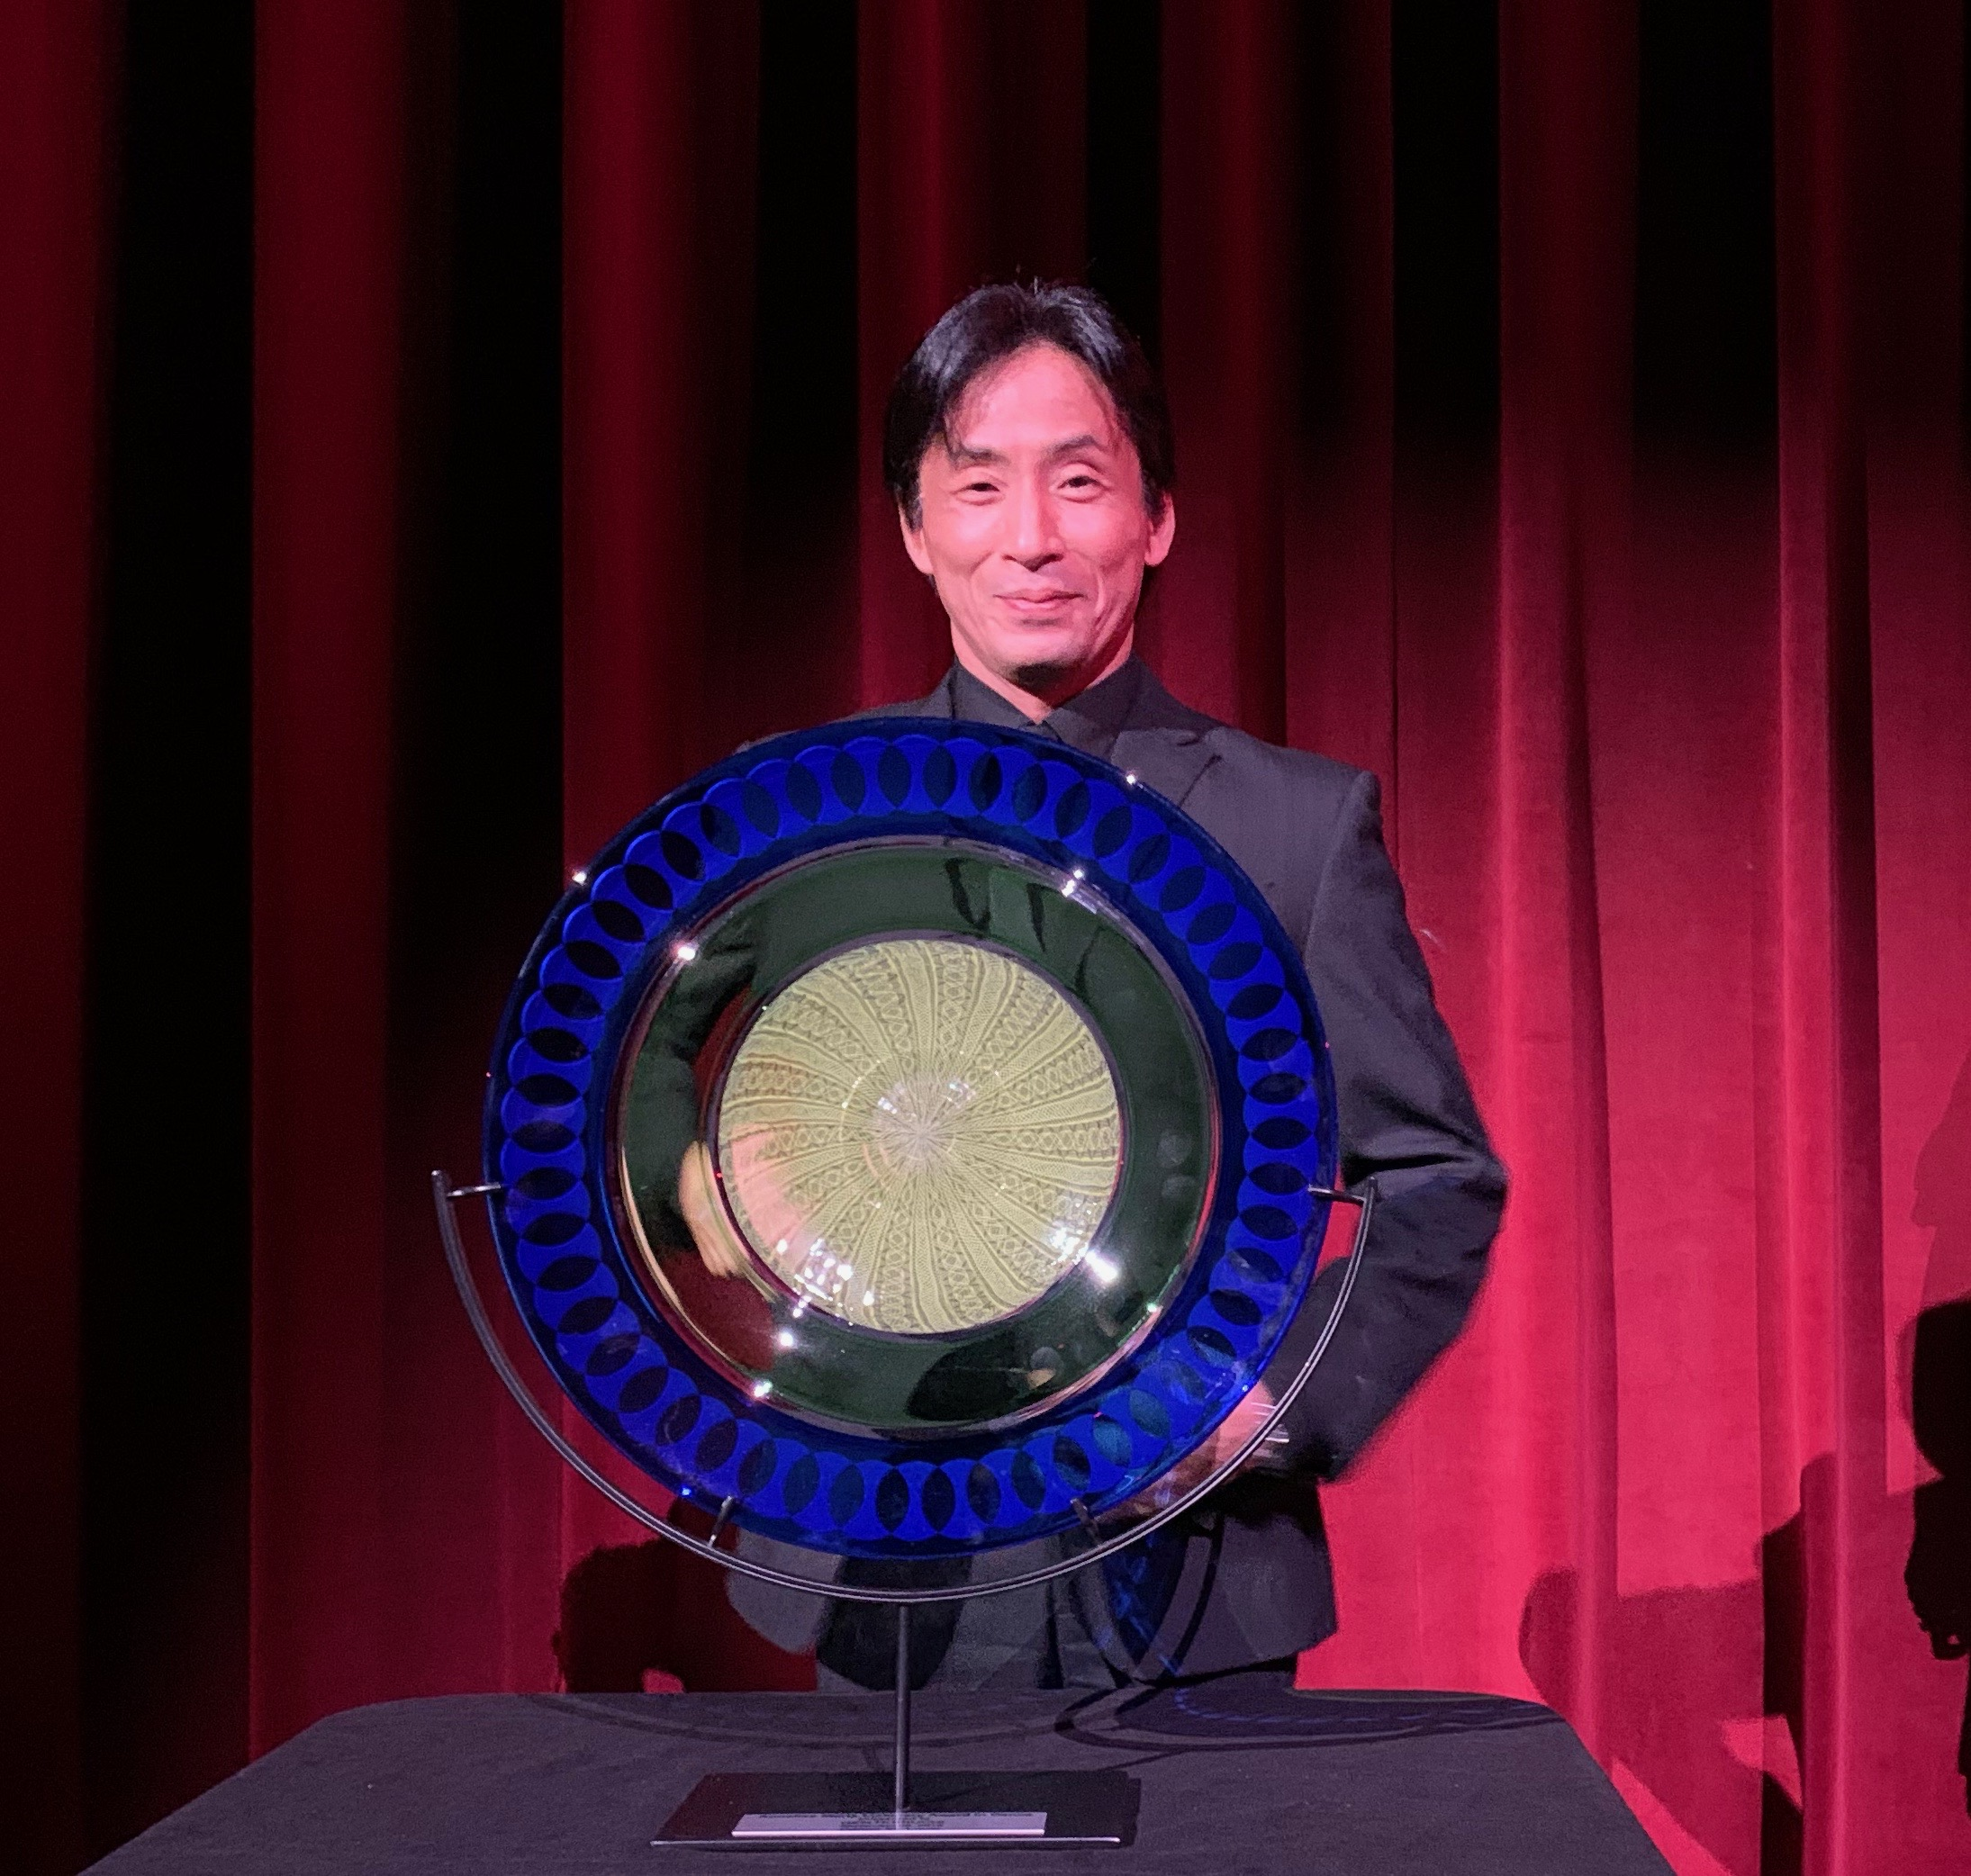 gen horiuchi receiving the 2019 Annelise Mertz Visionary Award in Dance at an evening of ballet stars 2 at the edison theatre, september 28, 2019.